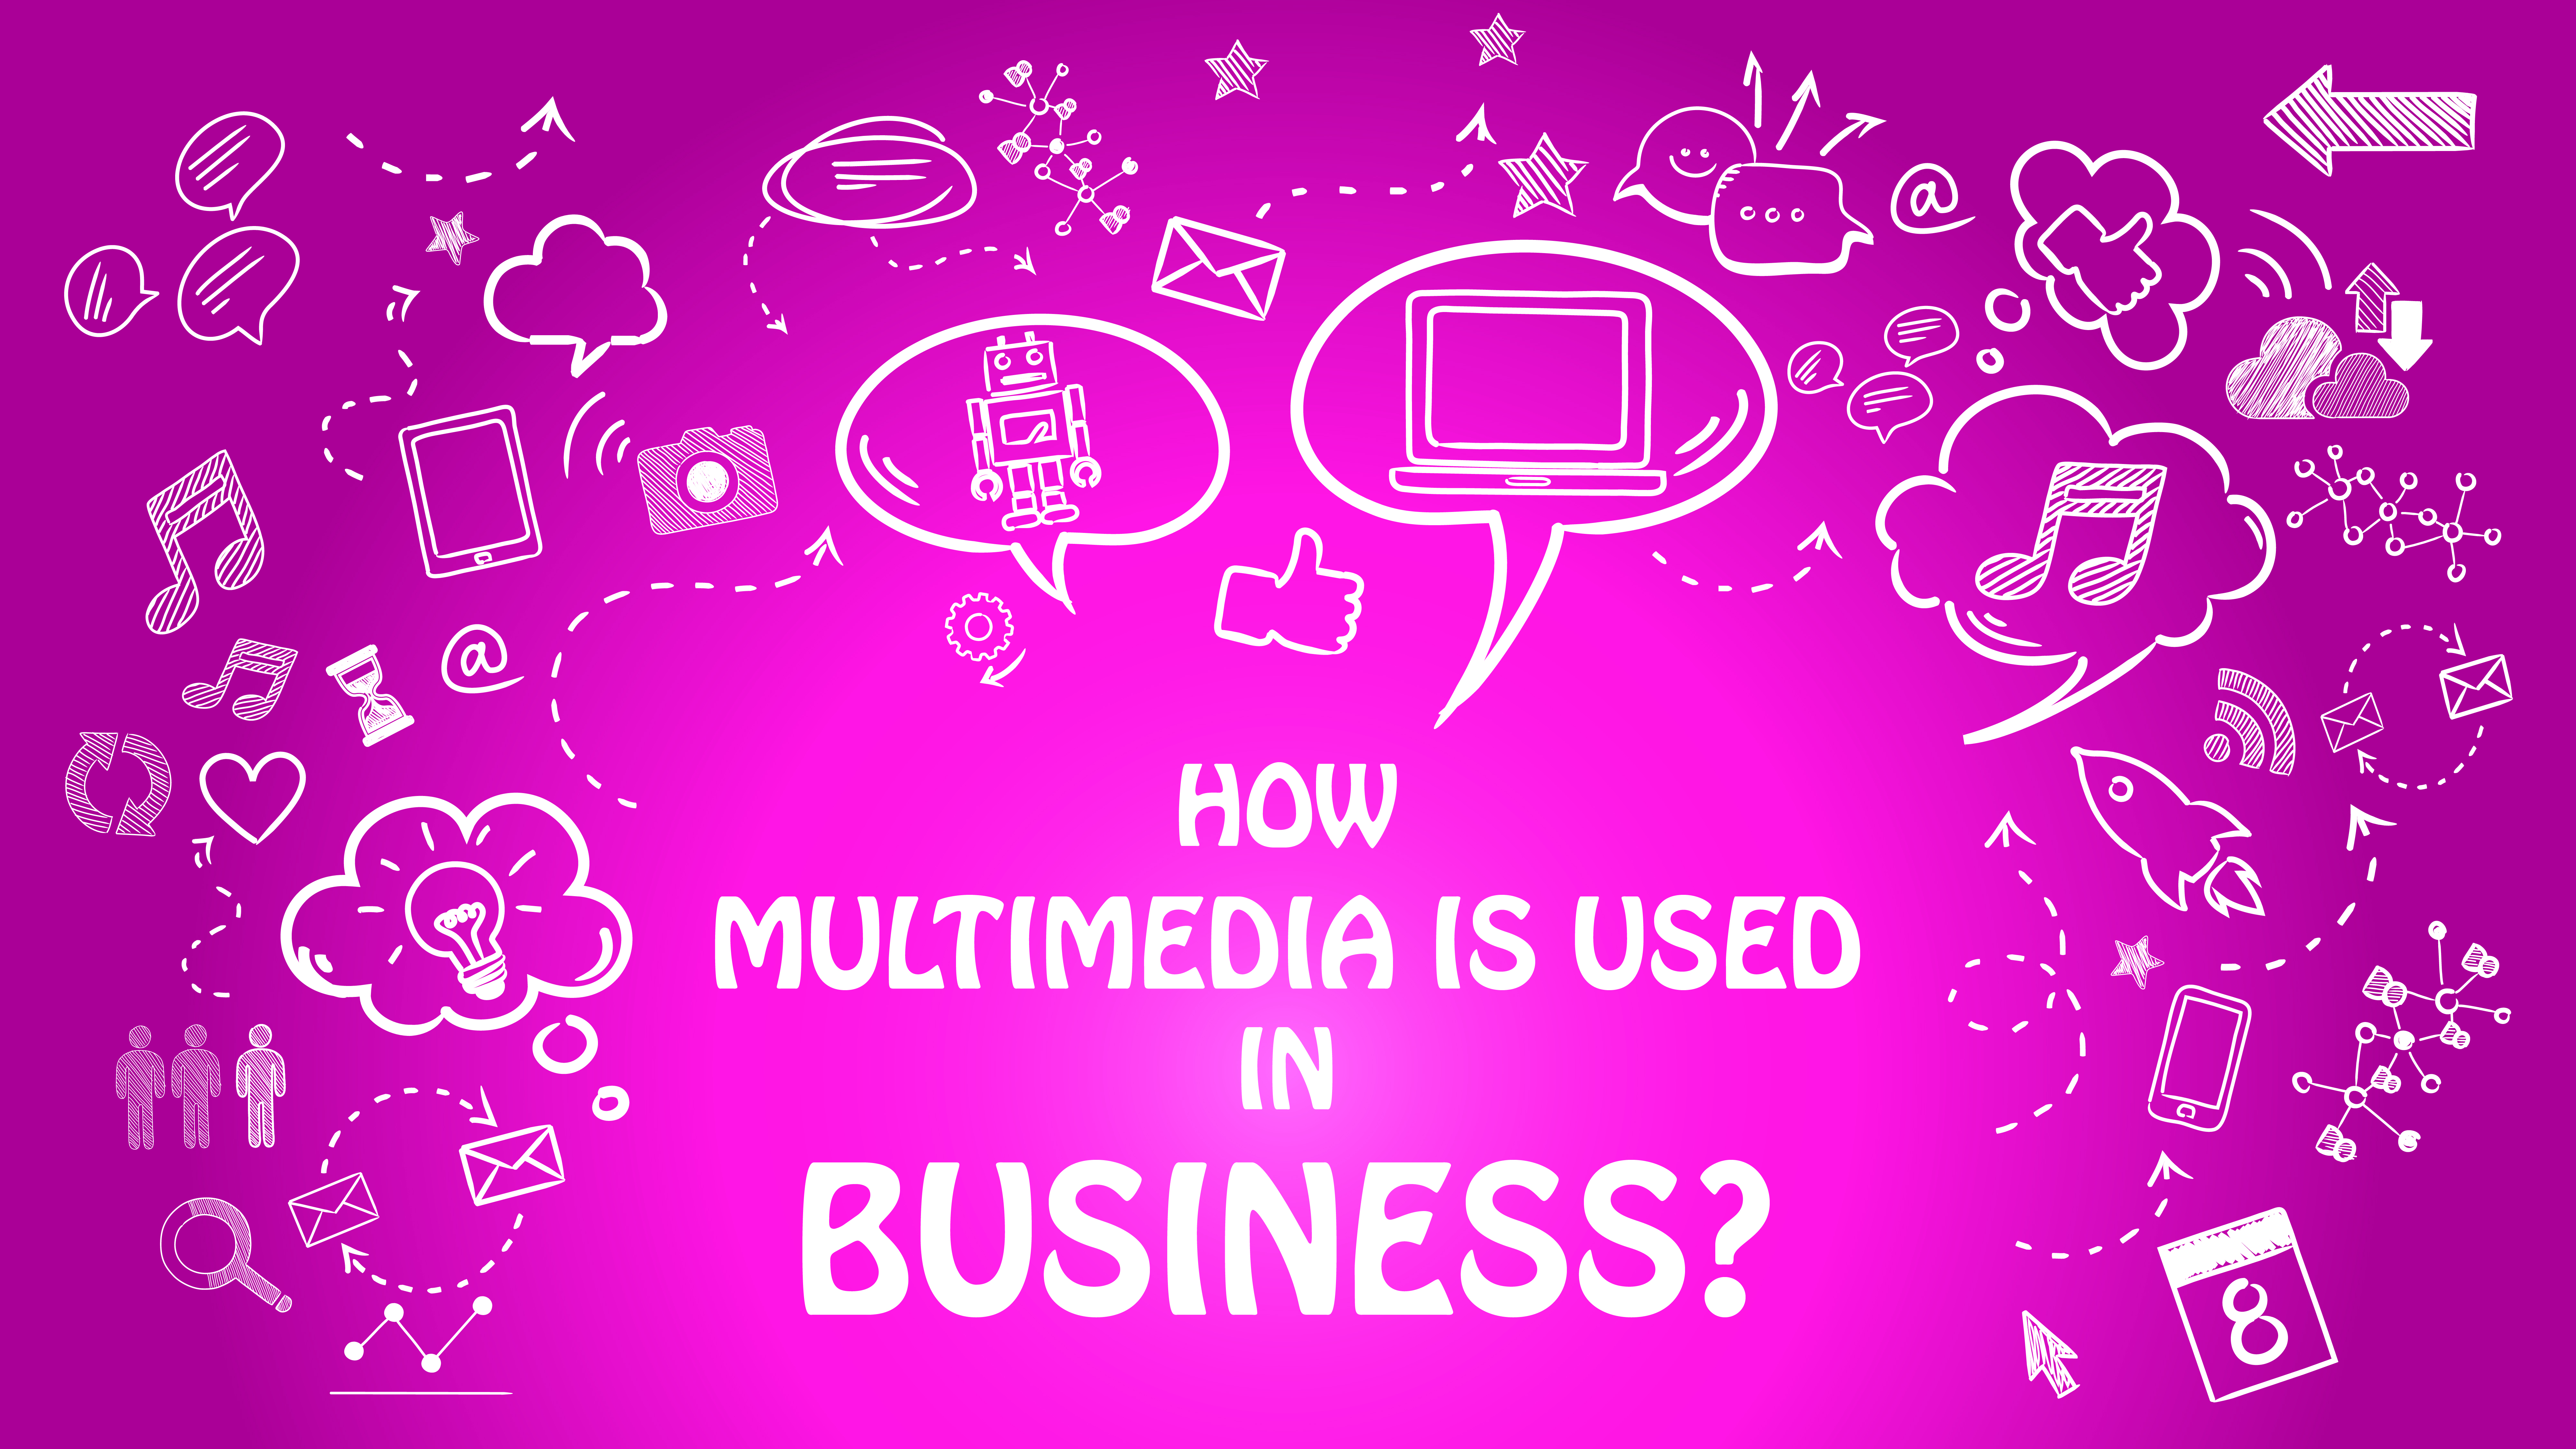 Multimedia refers to any content that combines multiple content types, such as audio, text, images, animations, and video. Multimedia can be recorded, played, displayed, interacted and accessed using information processing devices such as computers and electronic devices. Multimedia platforms allow you to share, view and make this content. Multimedia platforms can be used to communicate and educate business audiences.